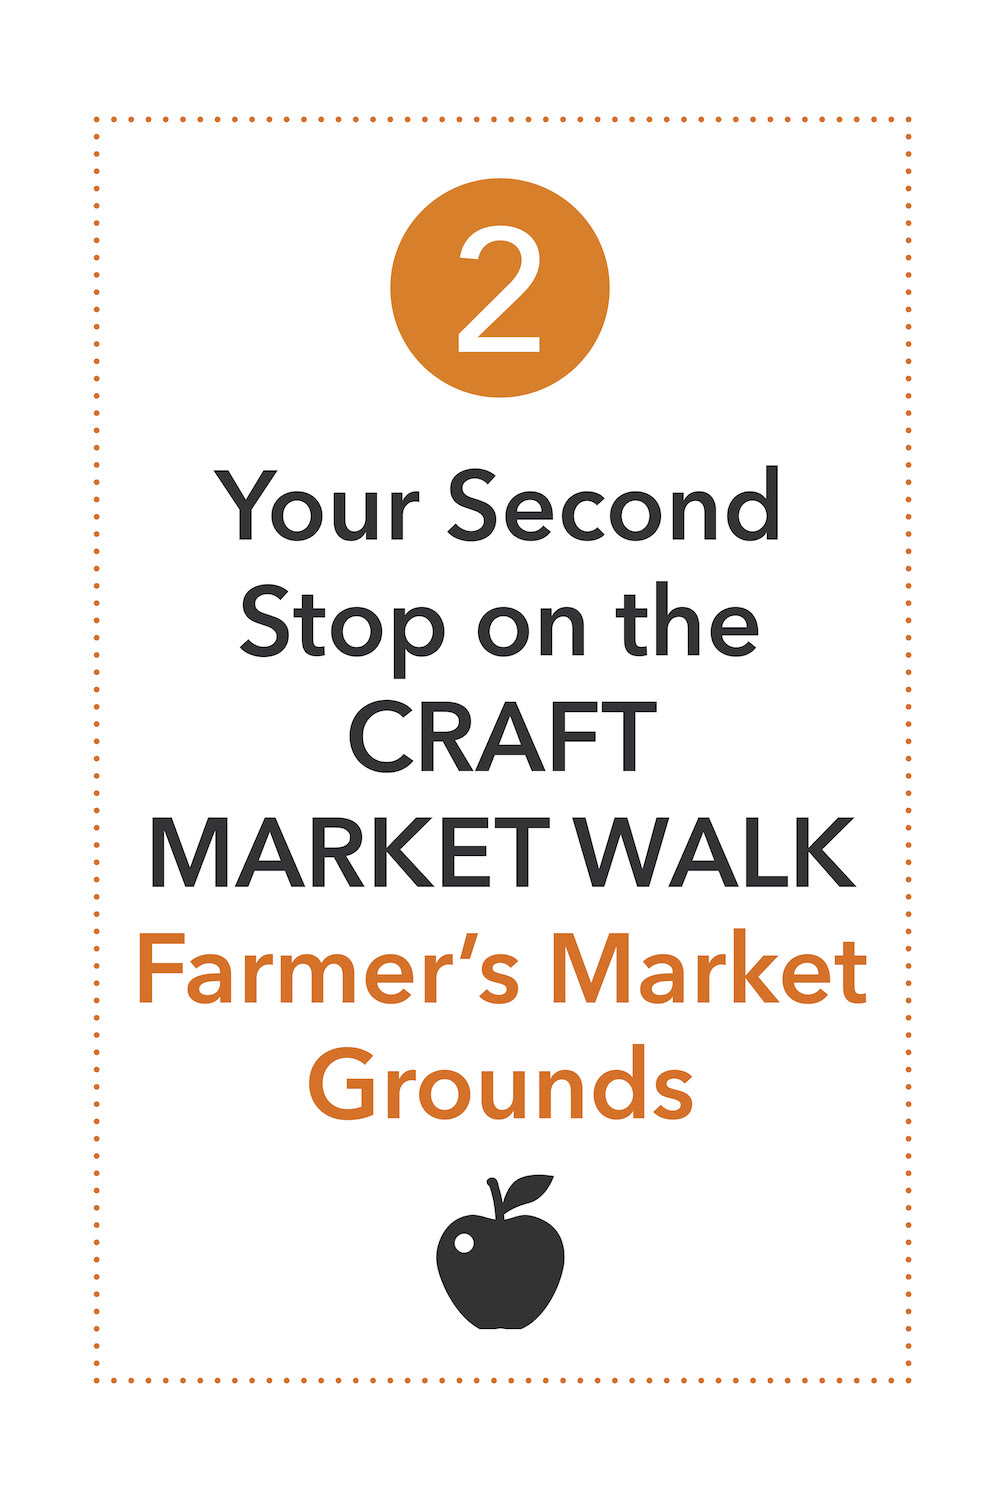 CMW_AFrameSign_FarmersMarket copy.jpg